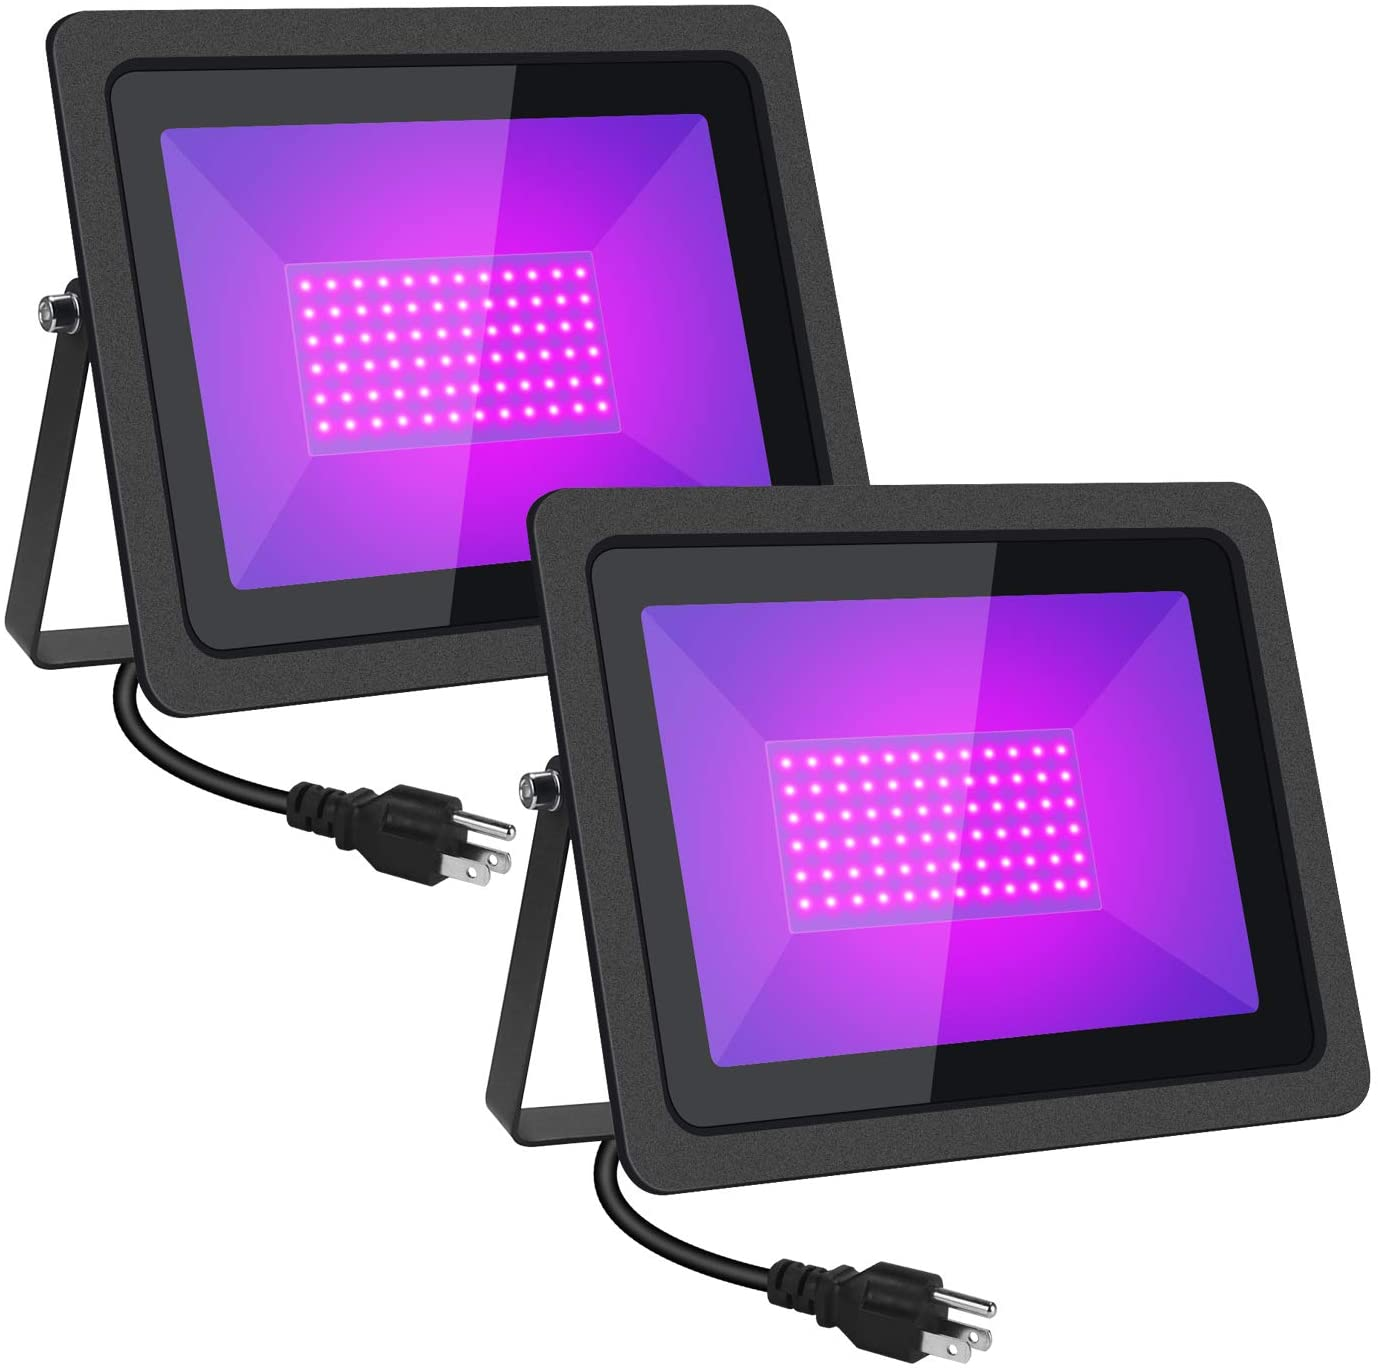 Black Lights HWay 100W LED Black Lights Flood Light with Plug(6ft Cable) for Blacklight Party, Stage Lighting, Aquarium, Body Paint, Fluorescent Poster, Neon Glow, Glow in The Dark (2Pack)